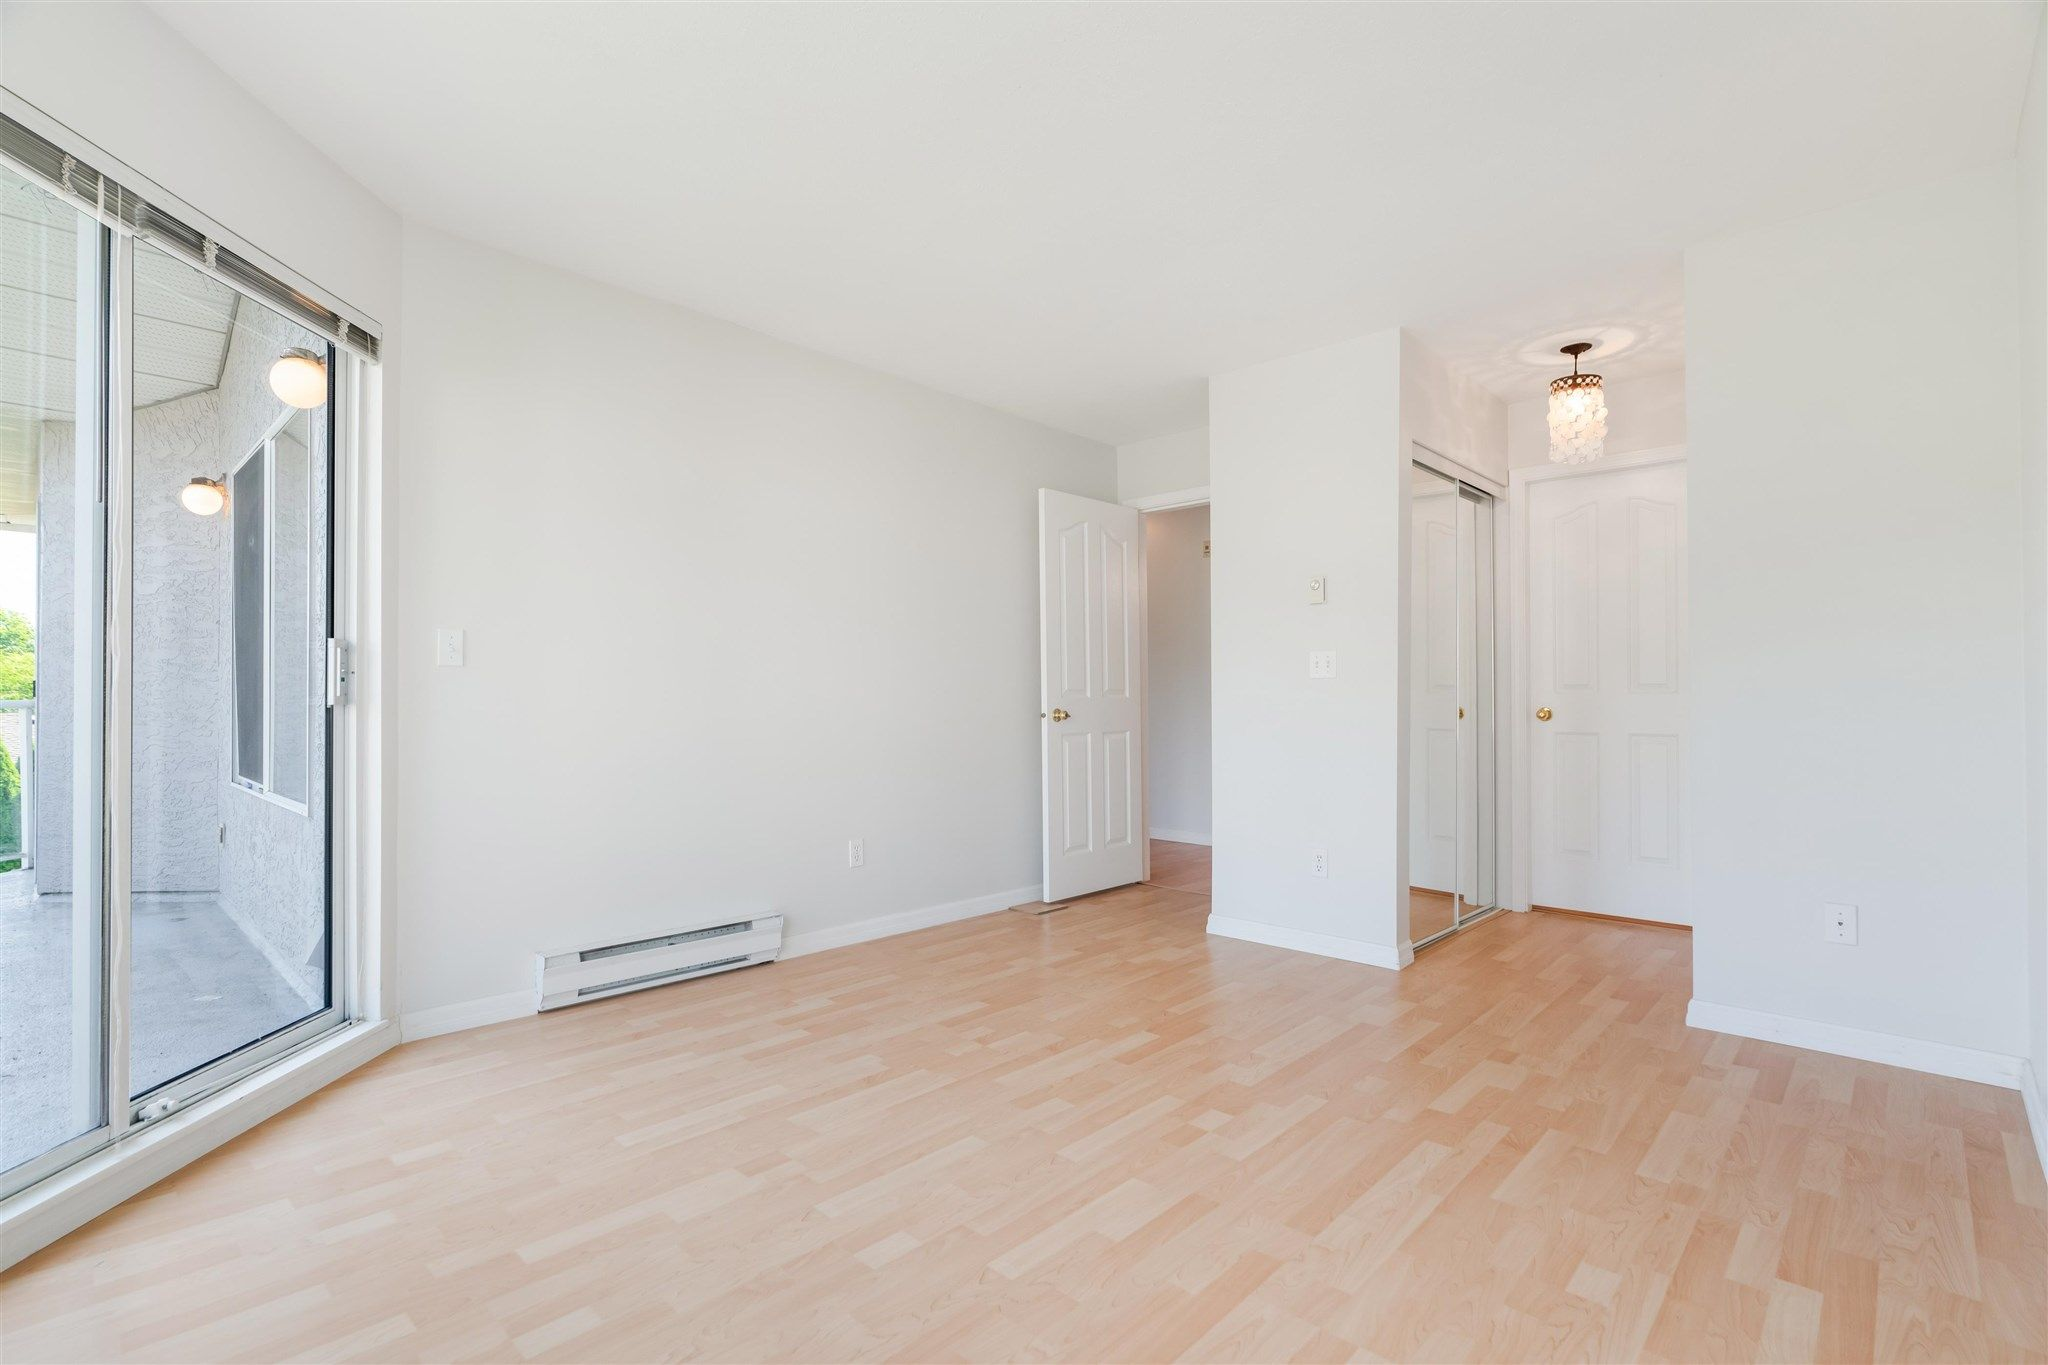 Photo 22: Photos: 303 1171 PIPELINE Road in Coquitlam: New Horizons Condo for sale : MLS®# R2607932